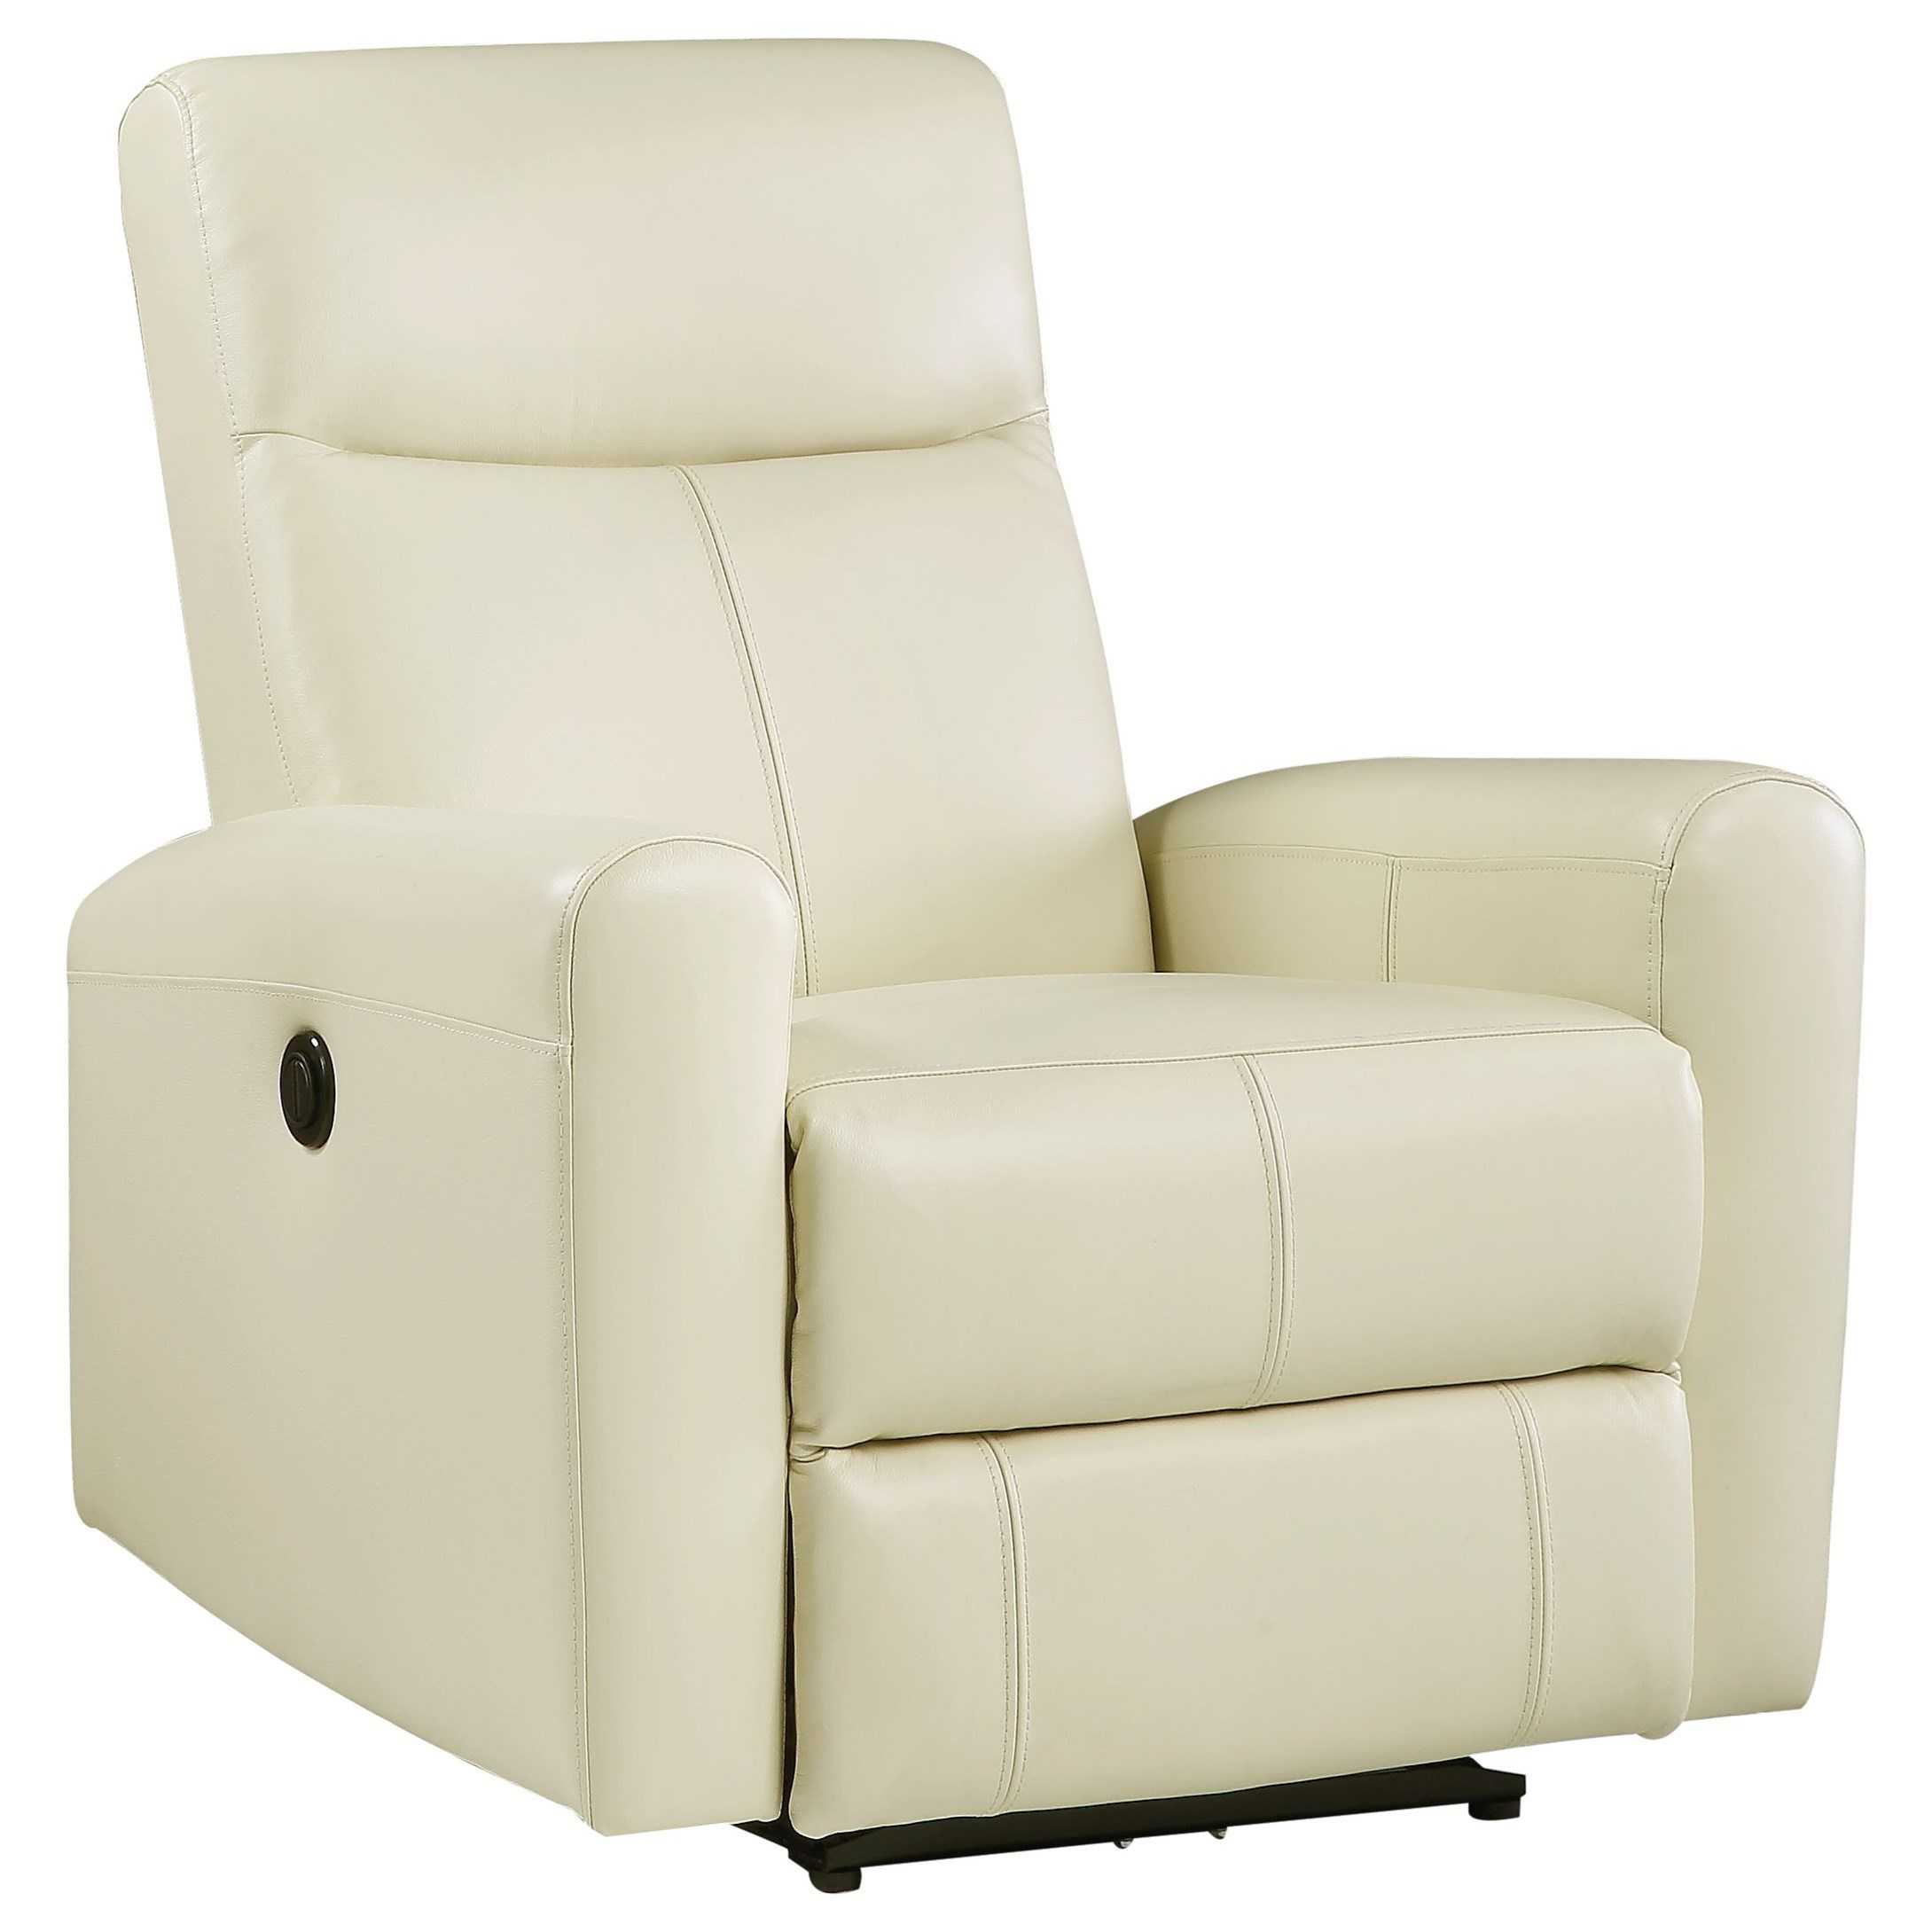 Blane Power Recliner by Acme Furniture at A1 Furniture & Mattress